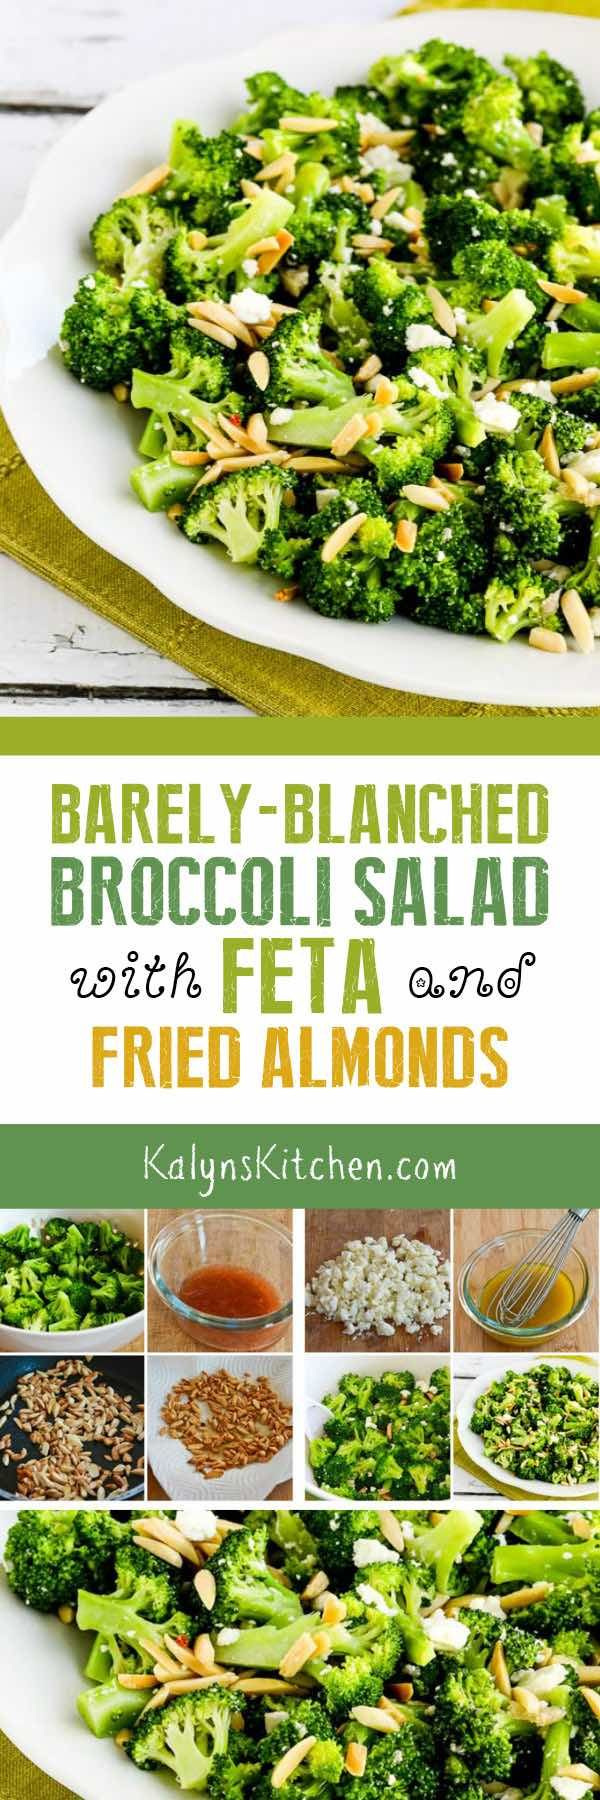 This Barely-Blanched Broccoli Salad with Feta and Fried Almonds is absolutely a WOW, and this amazing broccoli salad is low-carb, Keto, low-glycemic, gluten-free, and meatless. You MUST make this salad! [found on KalynsKitchen.com] #BroccoliSalad #LowCarbSalad #LowCarbBroccoliSalad